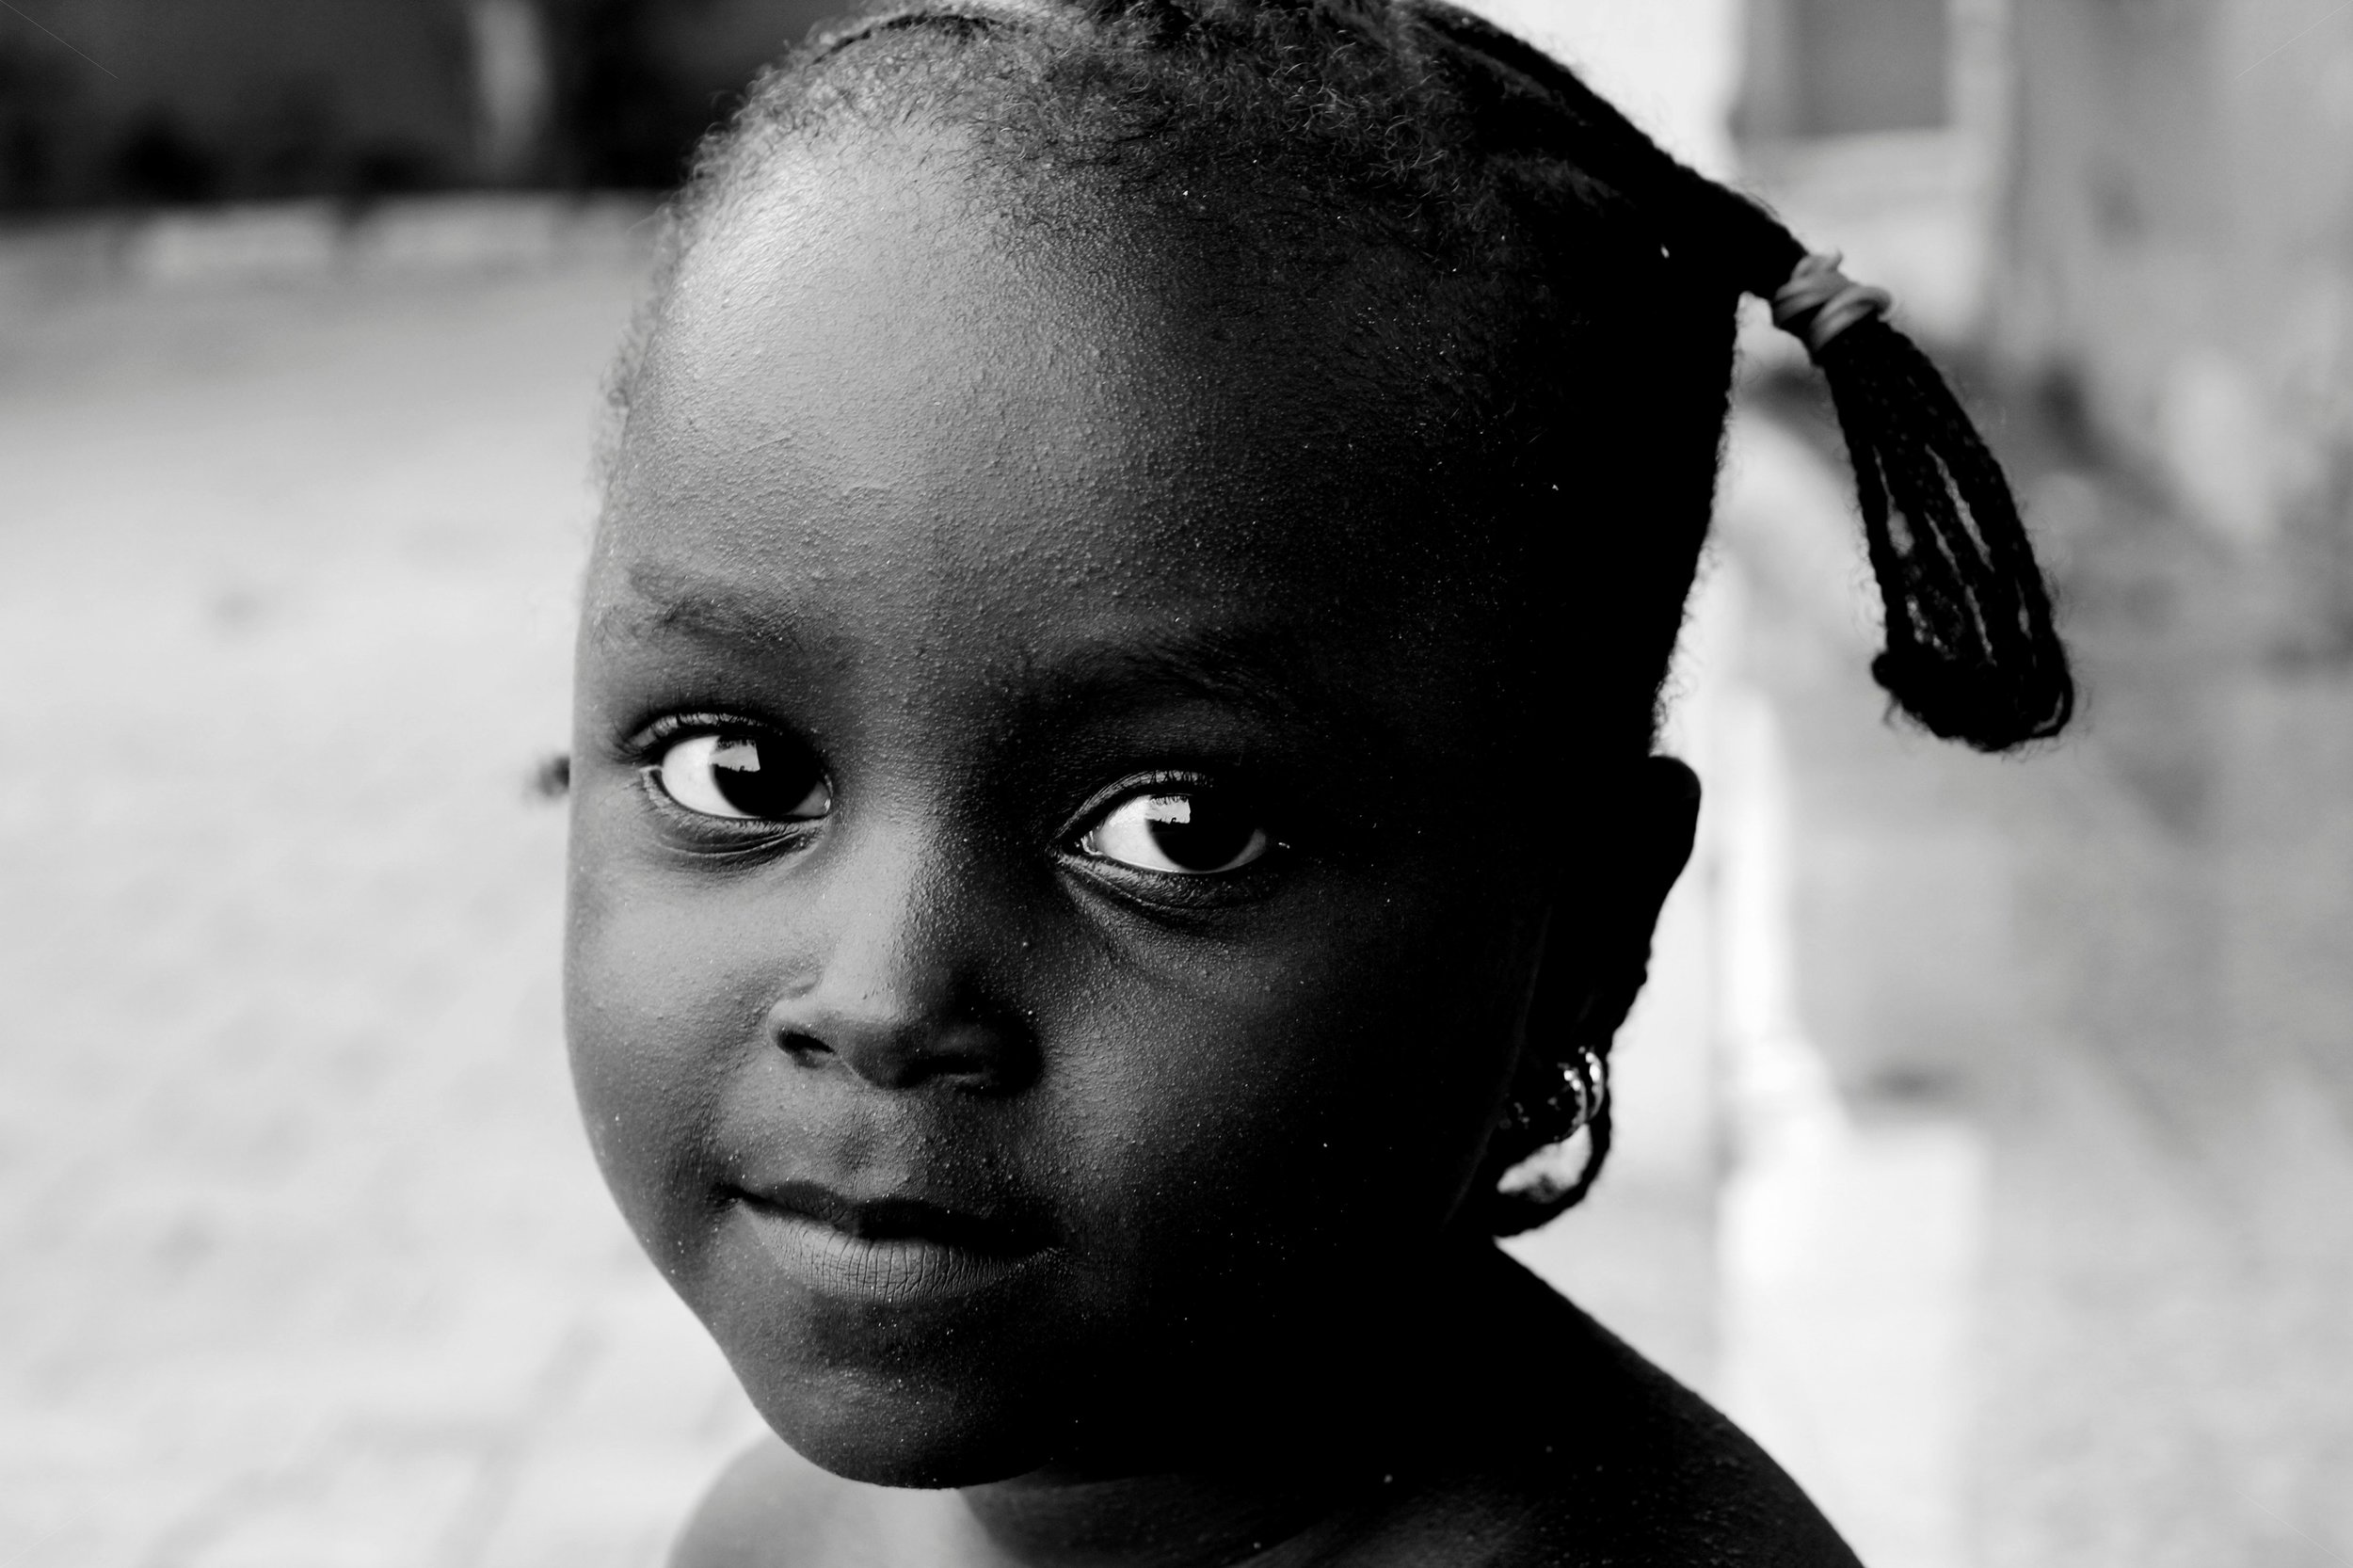 adorable-black-and-white-child-2505397.jpg